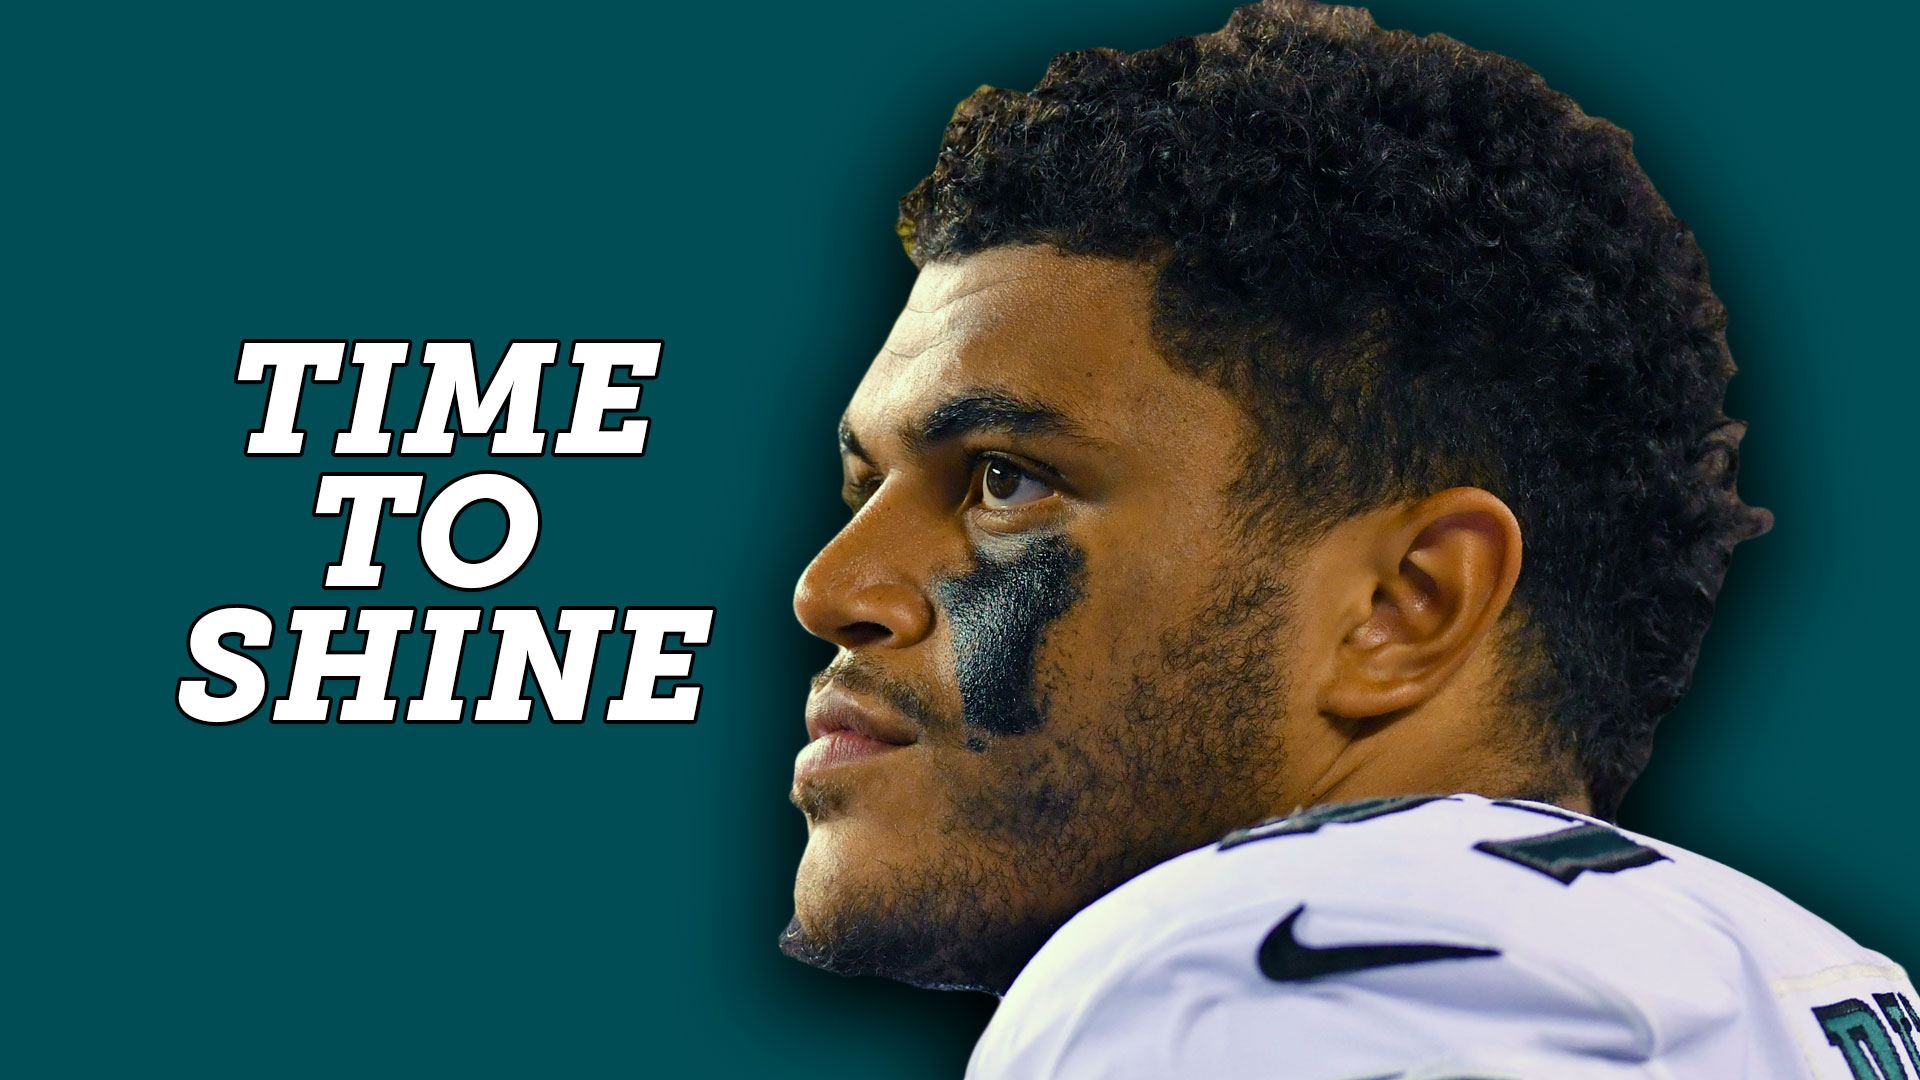 Eagles have all the confidence in rookie tackle, Andre Dillard